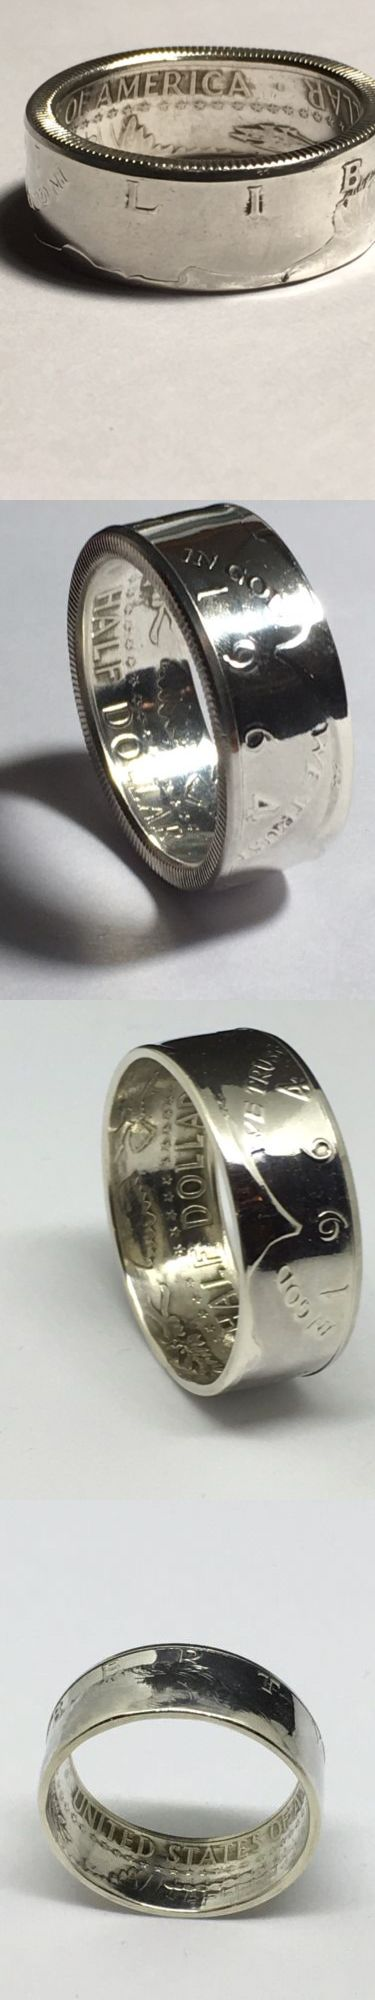 Rings 110666: 1964 Jfk Kennedy Half Dollar 90% Silver Coin Ring Men S Wedding Band Size 7-13 -> BUY IT NOW ONLY: $30 on eBay!